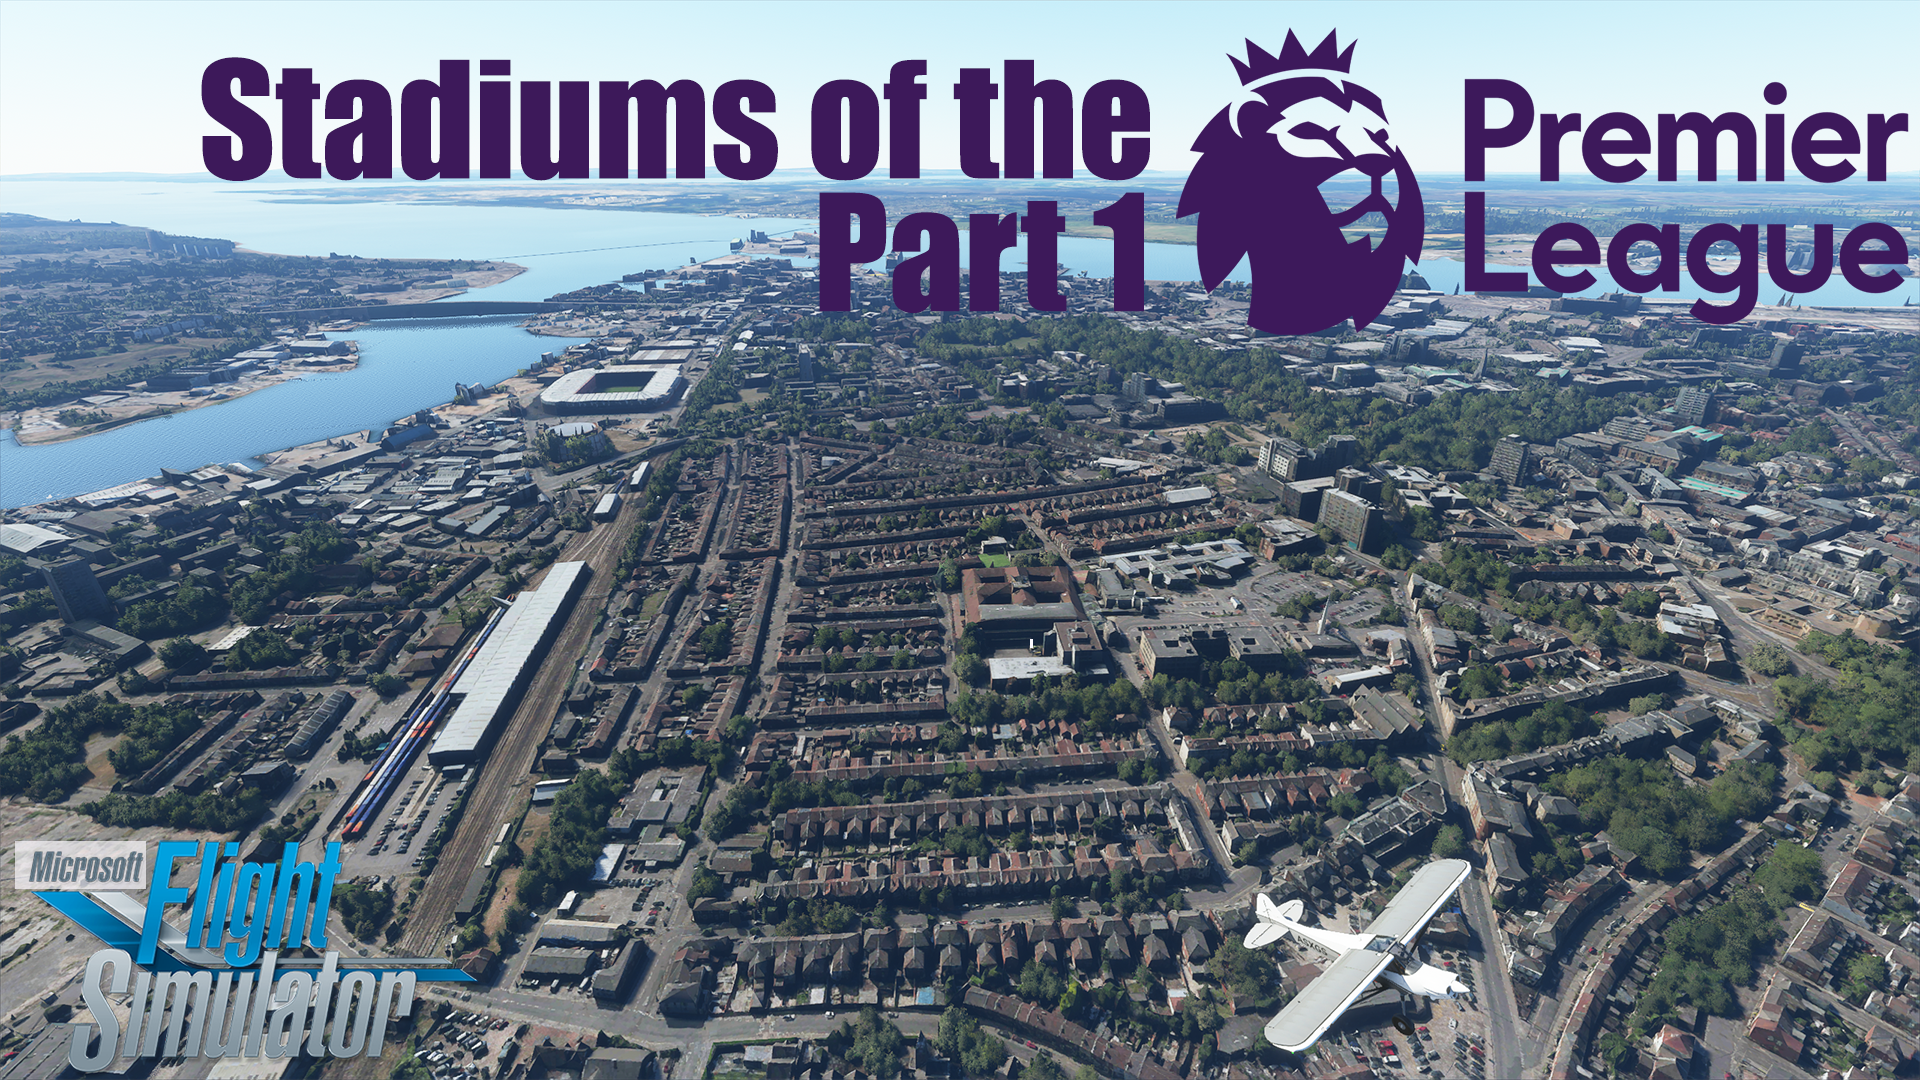 Microsoft Flight Simulator – Stadiums of the Premier League Part 1